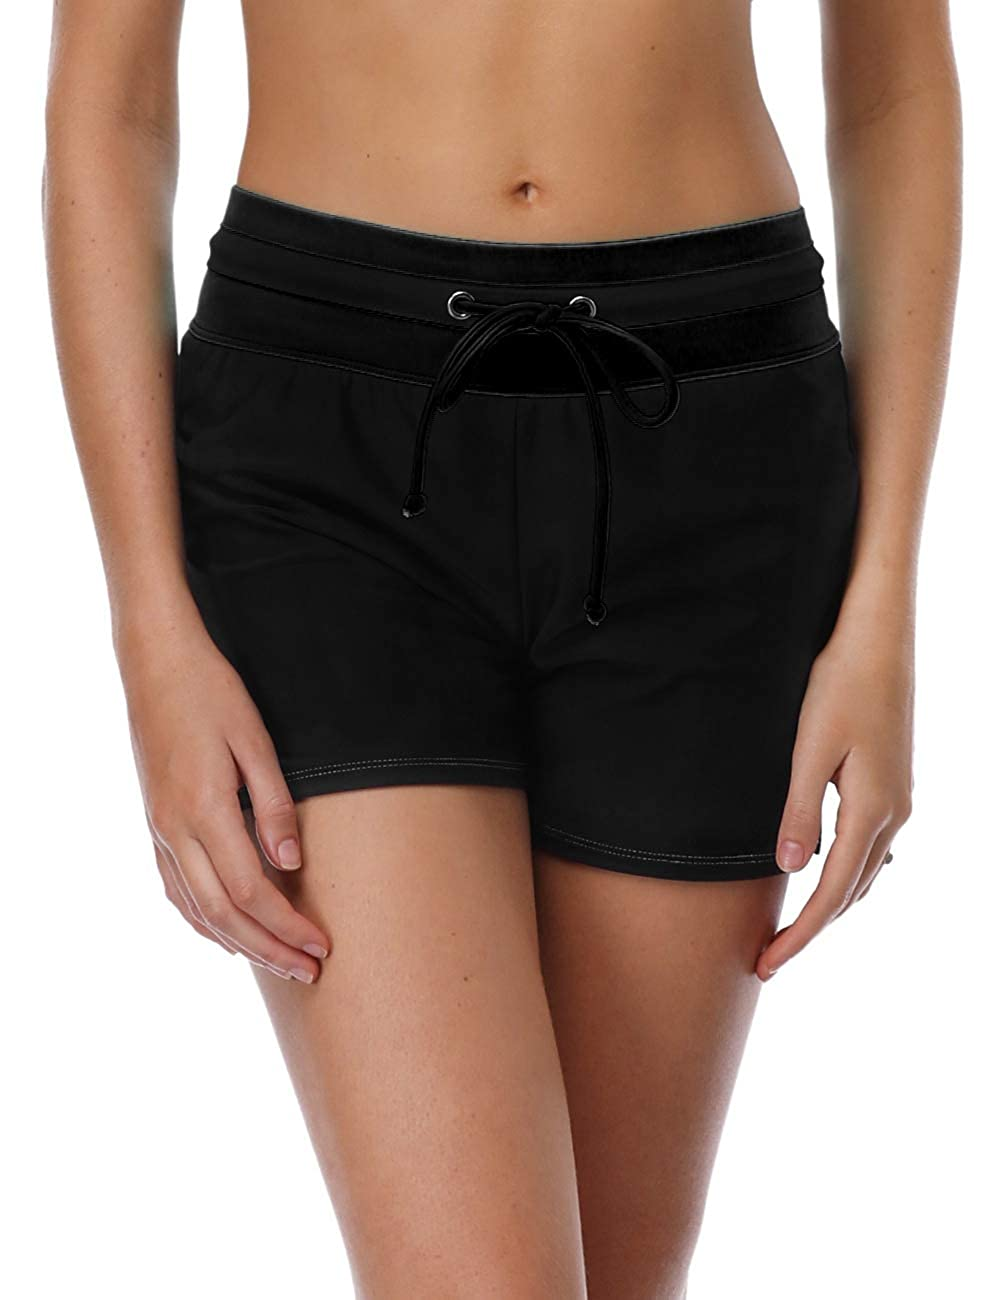 All Black Anferry Womens Board Shorts with High Waisted Swimwear Shorts color Block